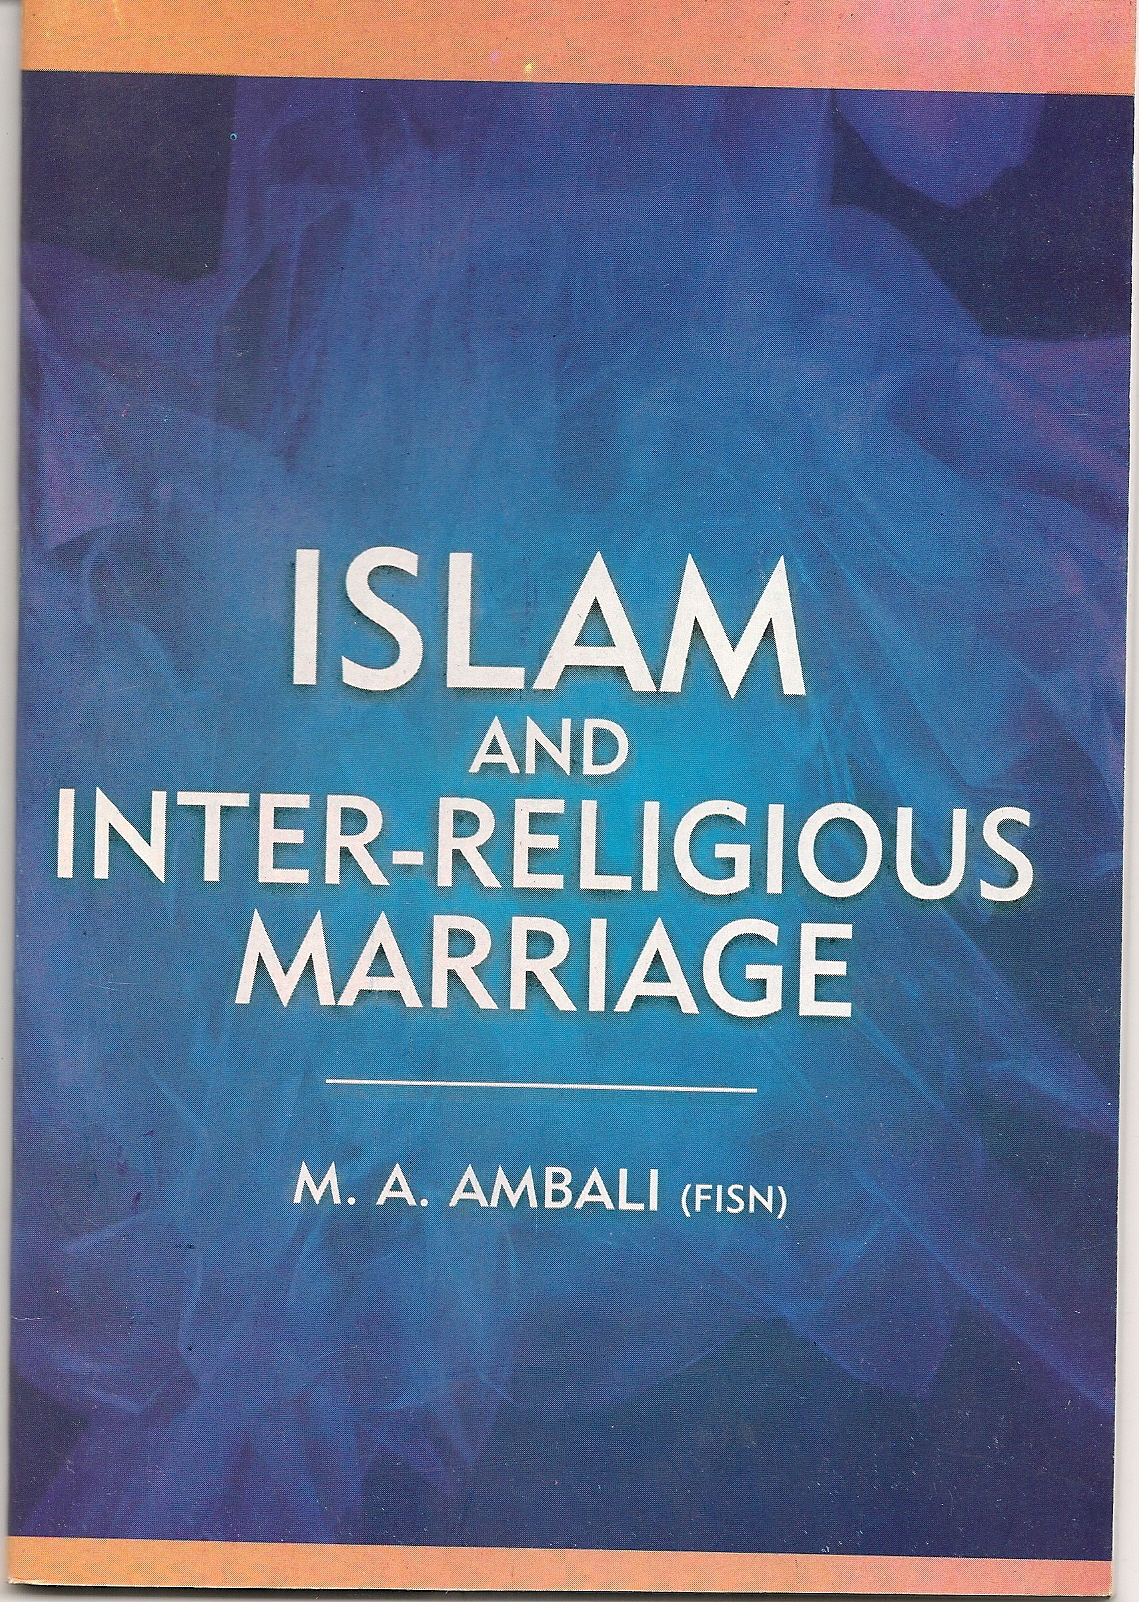 ISLAM AND INTER-RELIGIOUS MARRIAGE